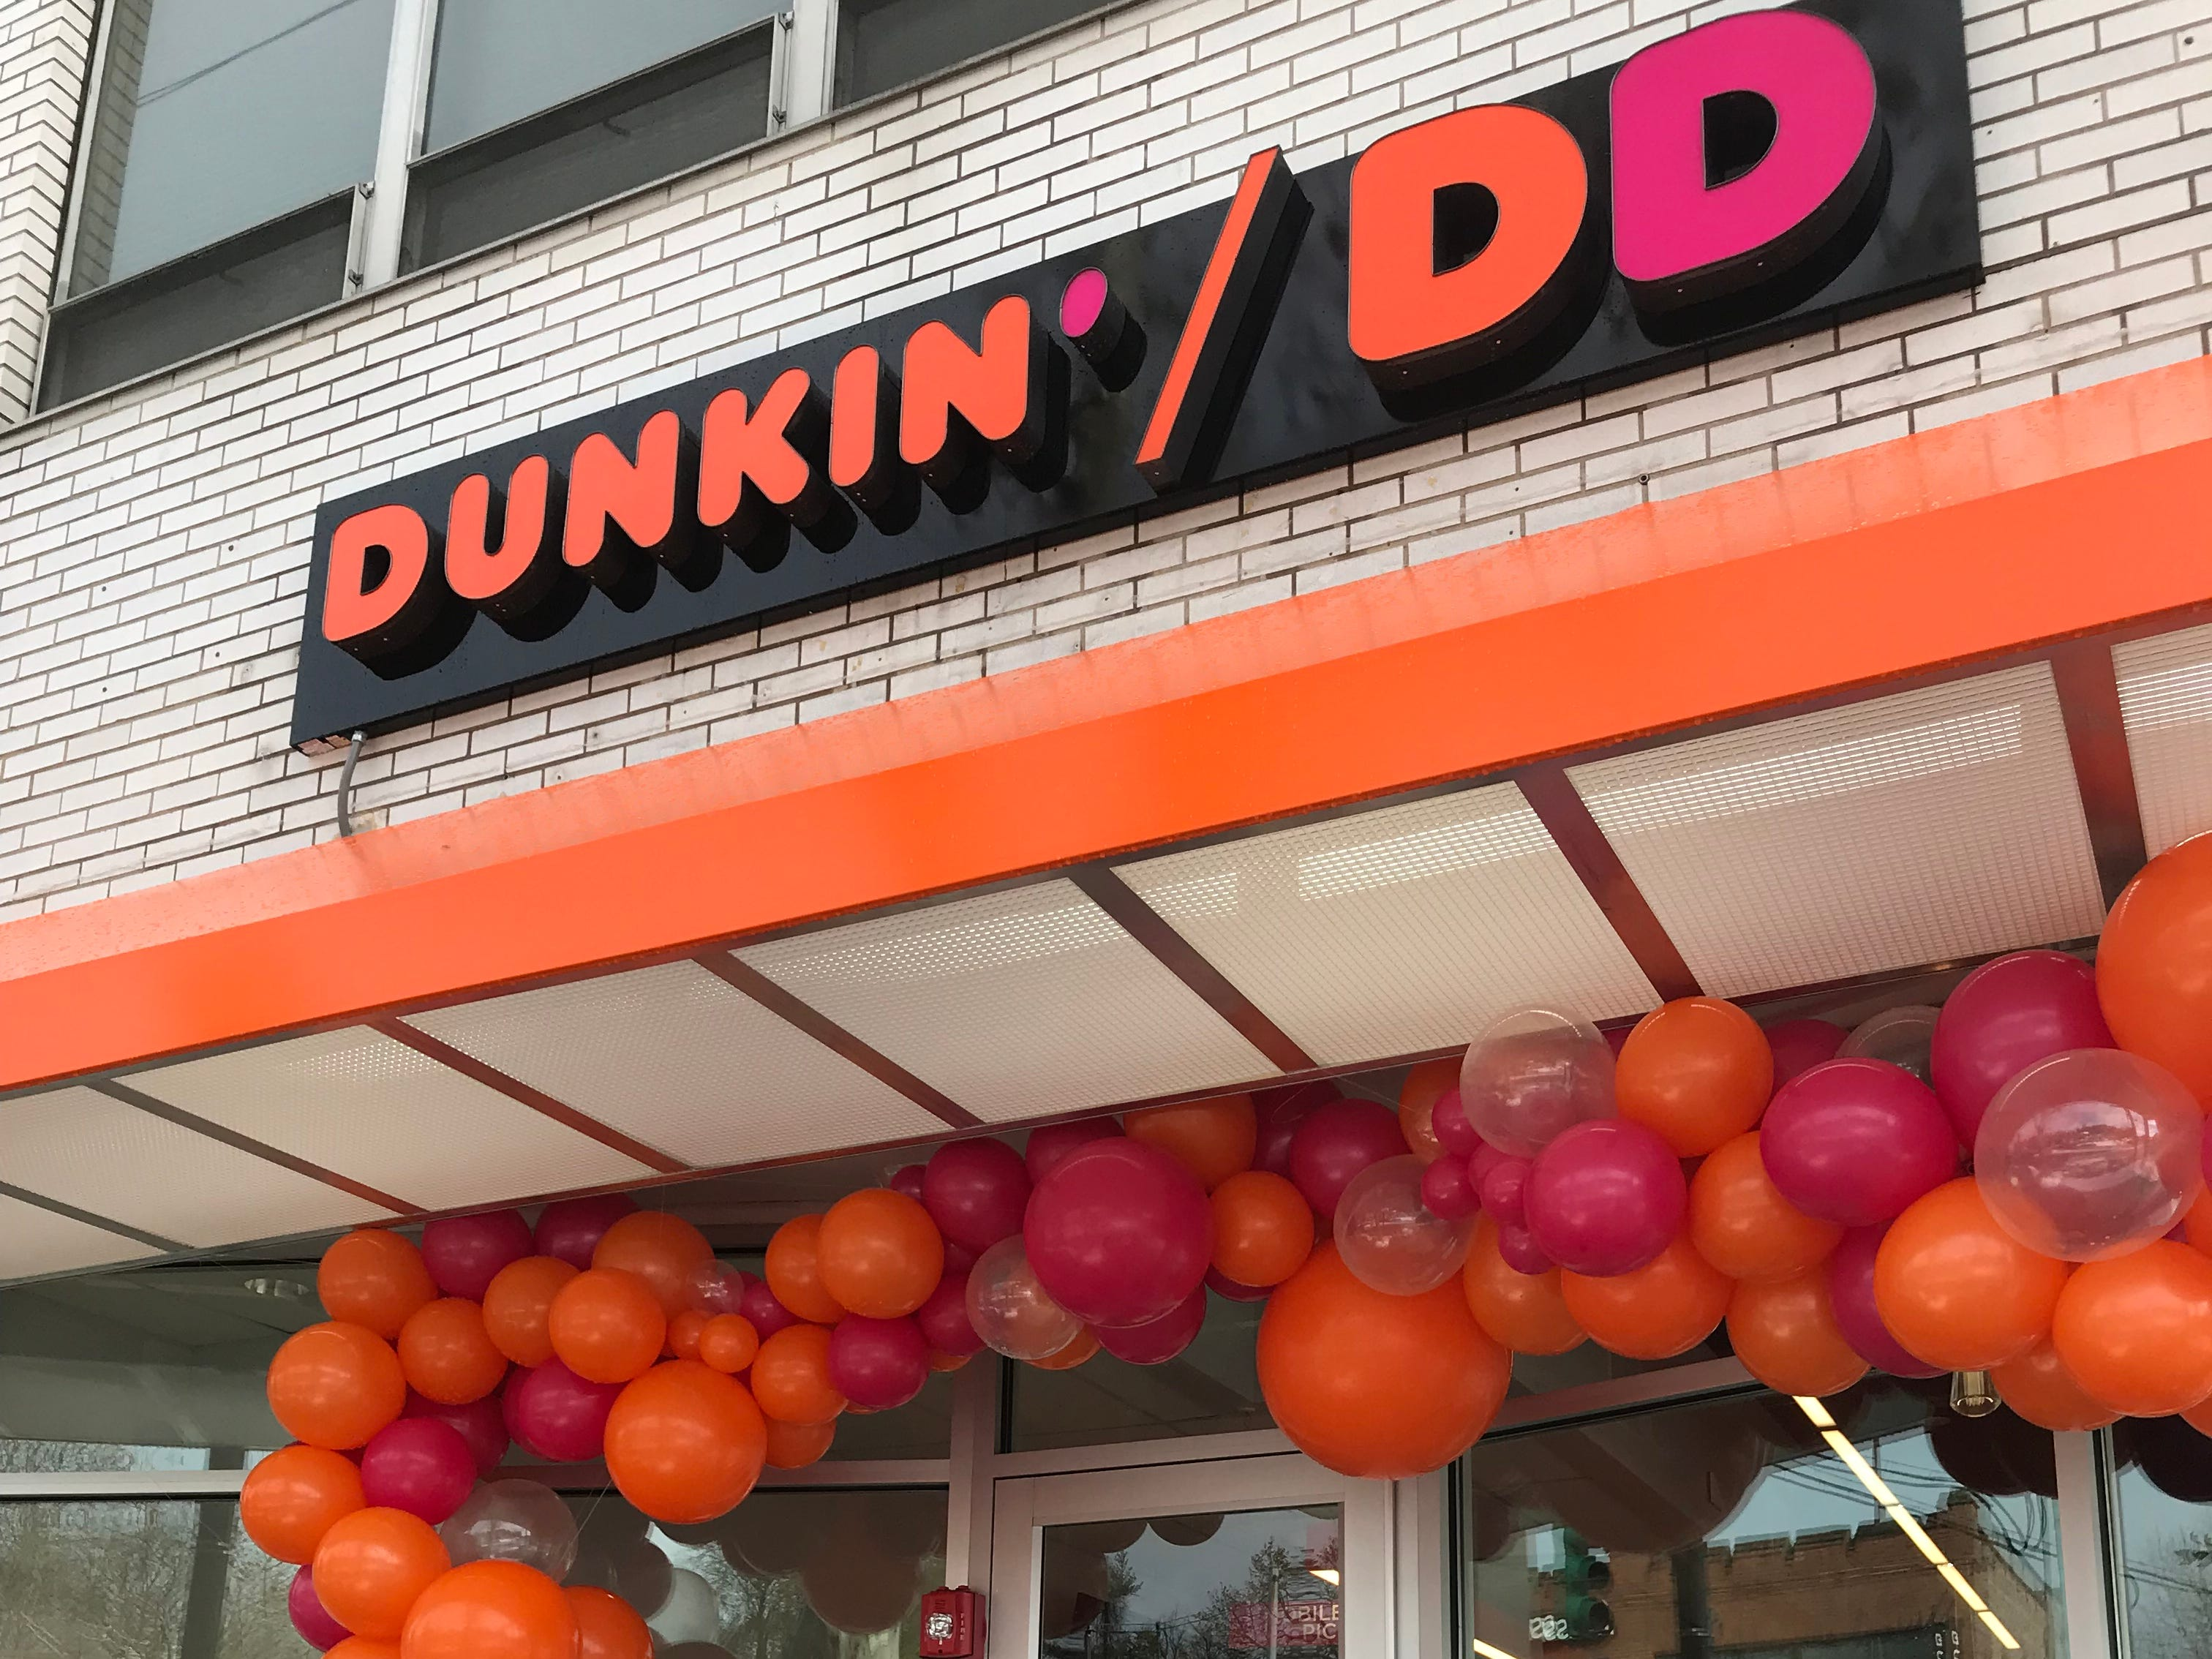 The new Dunkin'/DD store in Hartsdale. This is the first Next Generation Dunkin' Donuts in Westchester.